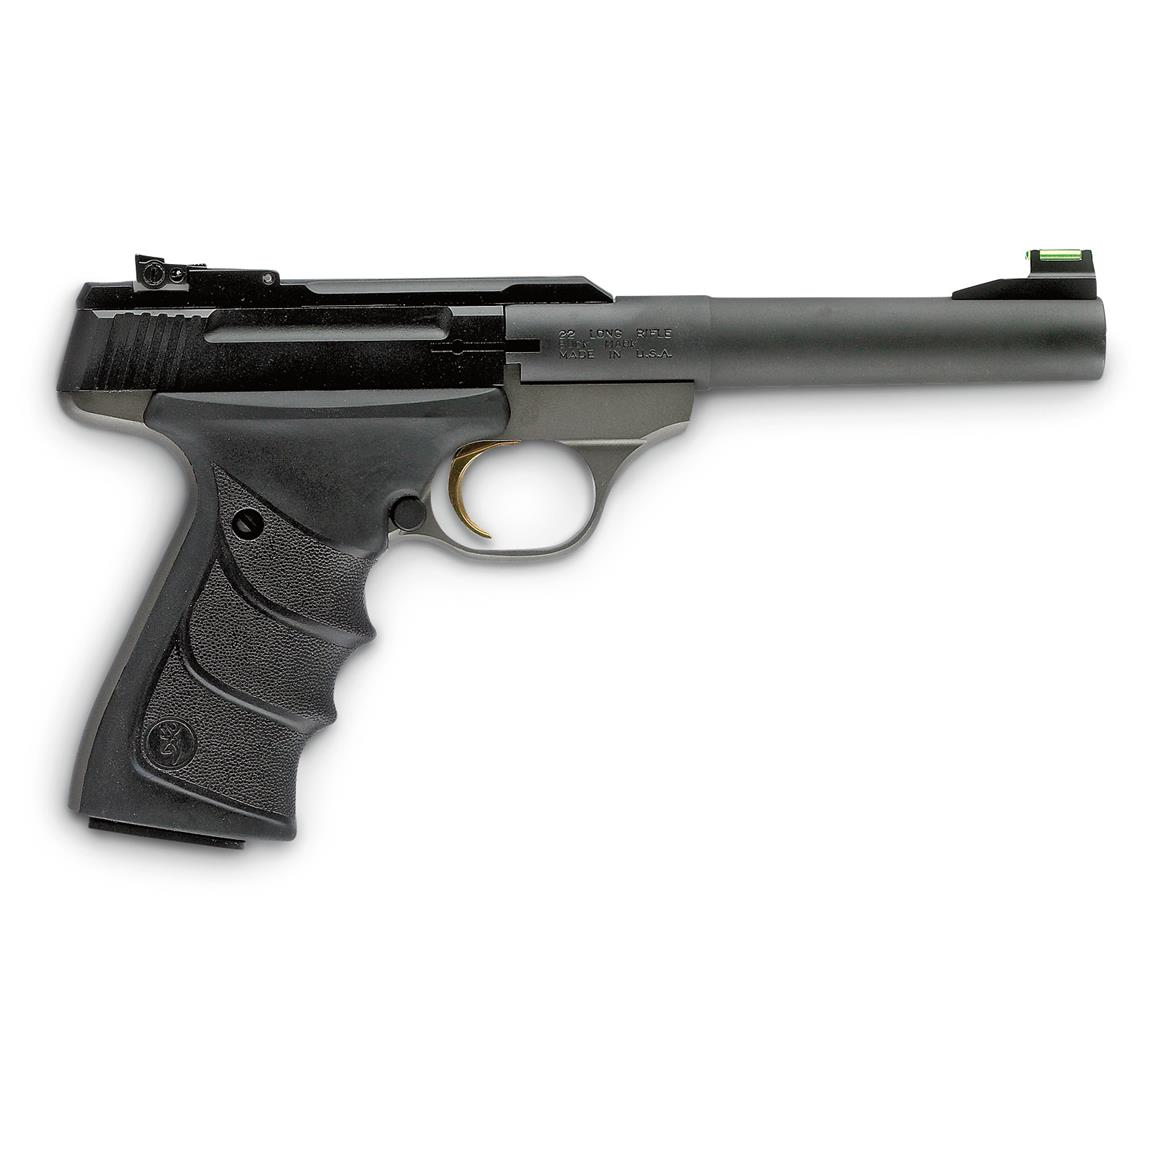 Browning Buck Mark Practical UDX, Semi-Automatic, .22LR, TruGlo Fiber Optic Sights, 10+1 Rounds